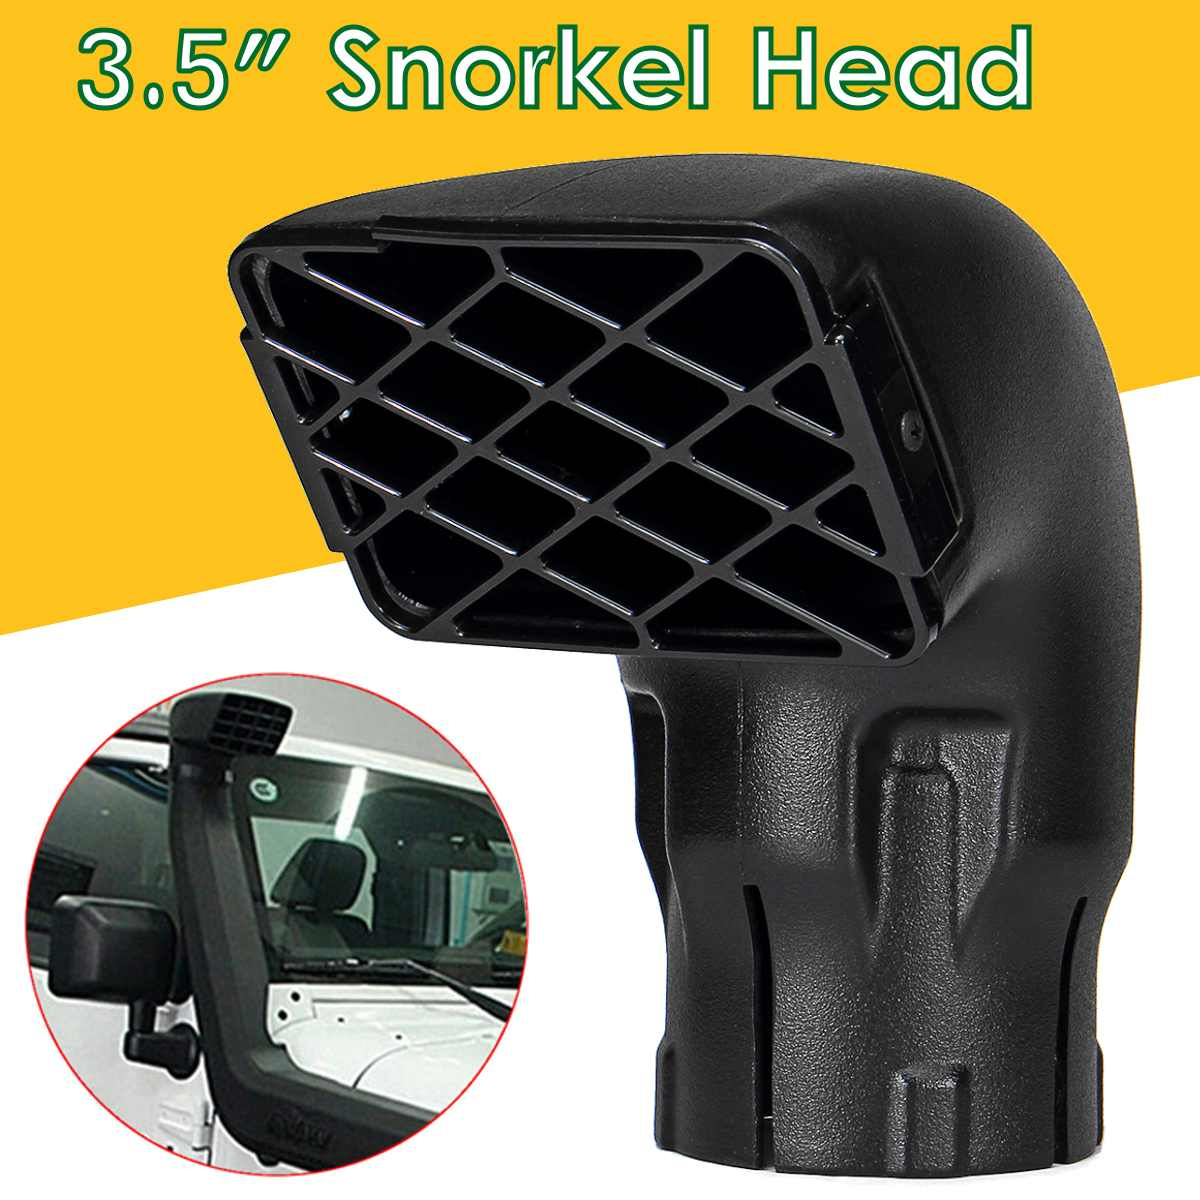 Black Car Air Intake Ram Fit Off Road Replacement Mudding Snorkel Head Air Intake Ram Dust Collector For Toyota SUV Car